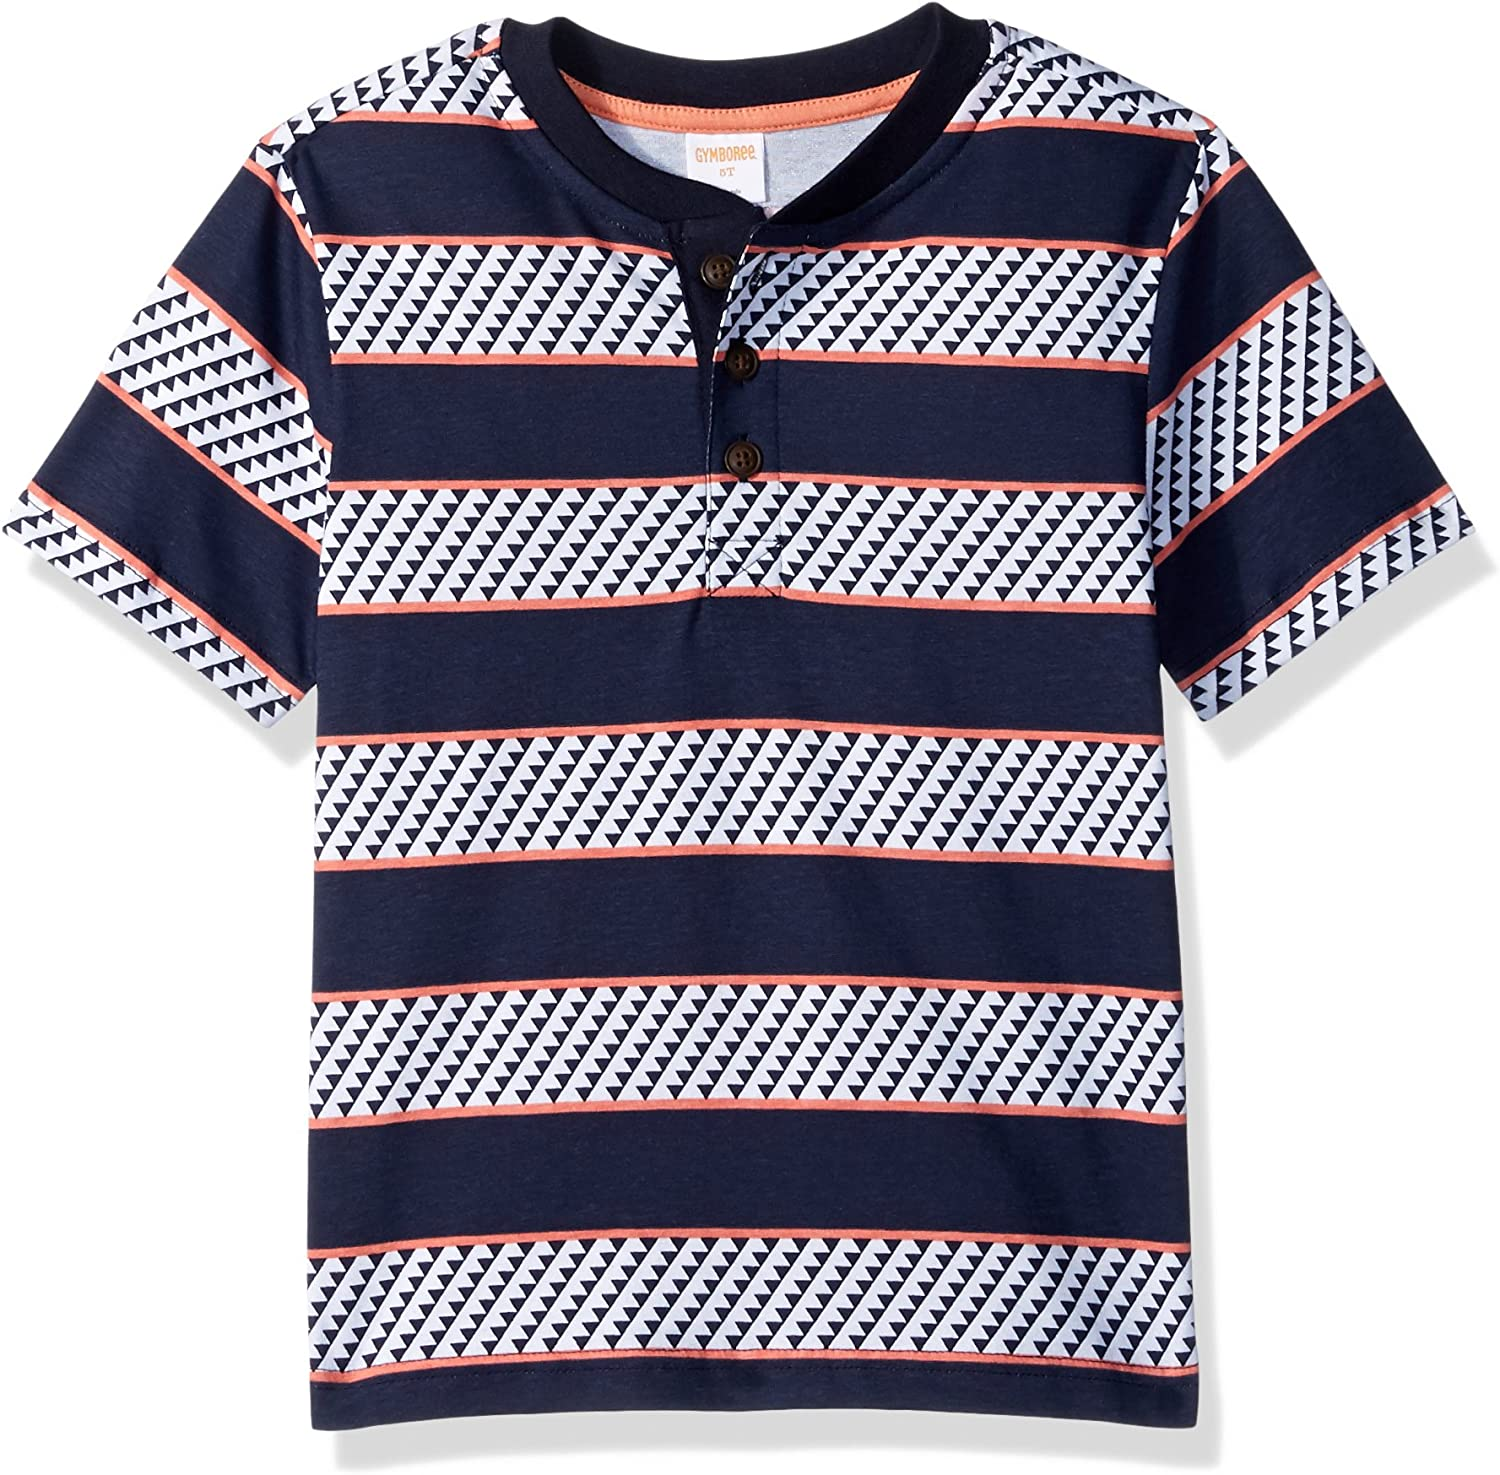 Gymboree Boys' Toddler Short Sleeve Tribal Print Polo Shirt